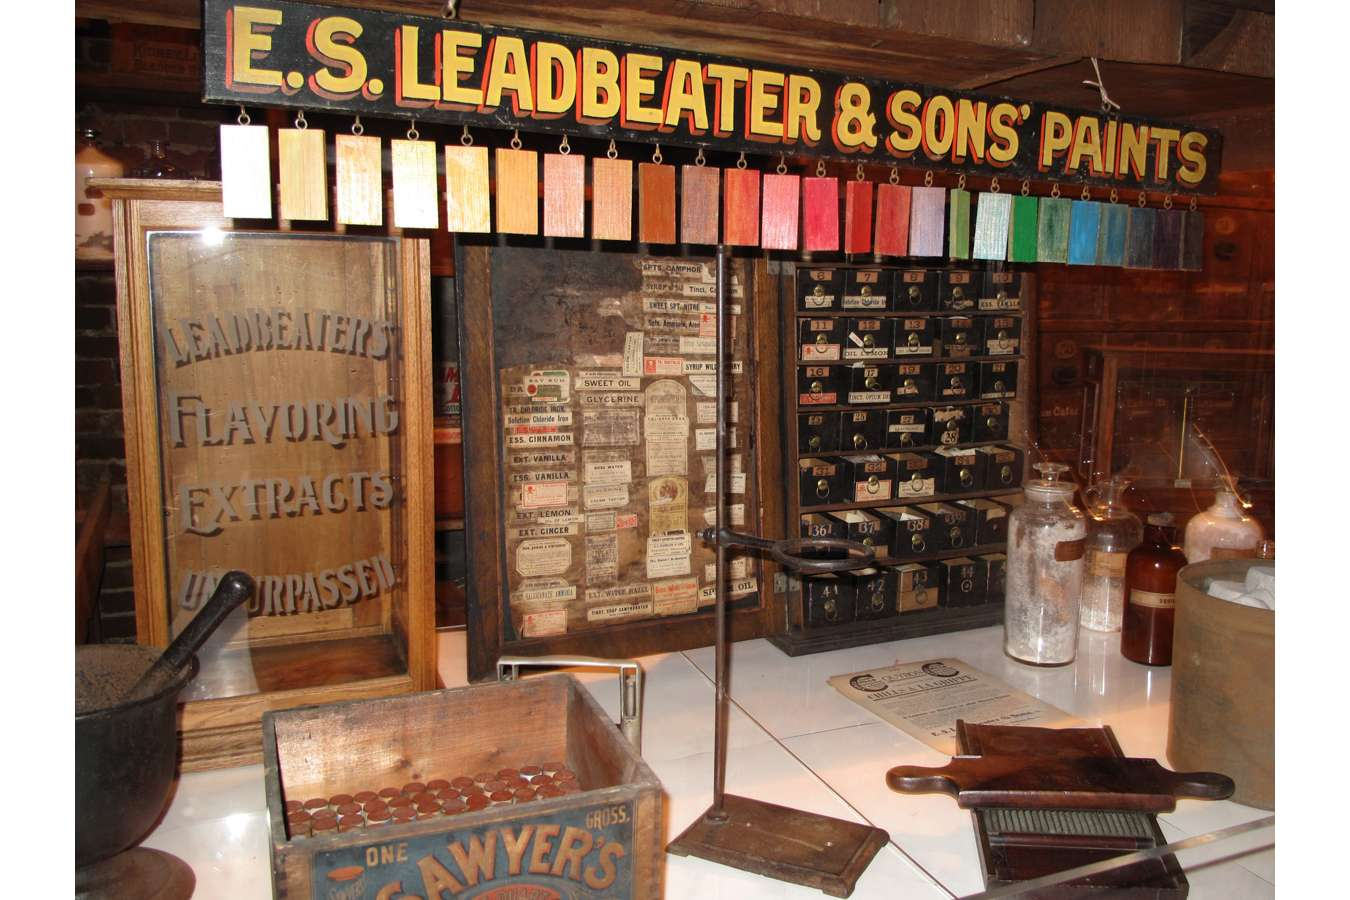 Apoth 0972 PREV : The Apothecary Museum is a time capsule of medical and business history in Alexandria